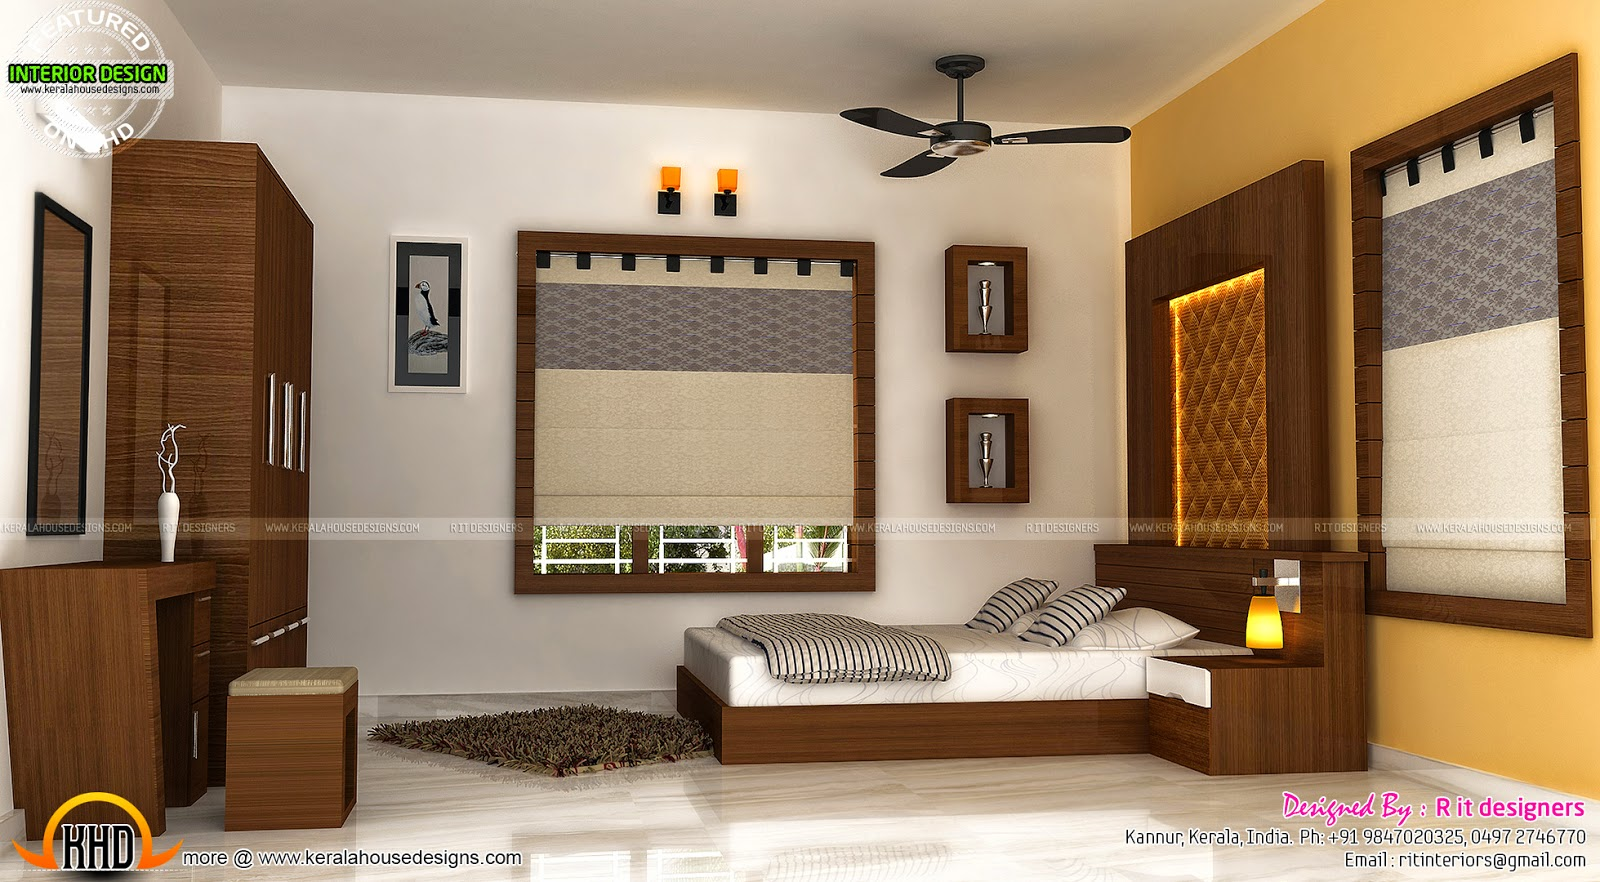 Staircase bedroom dining interiors kerala home design for Interior designs in kerala